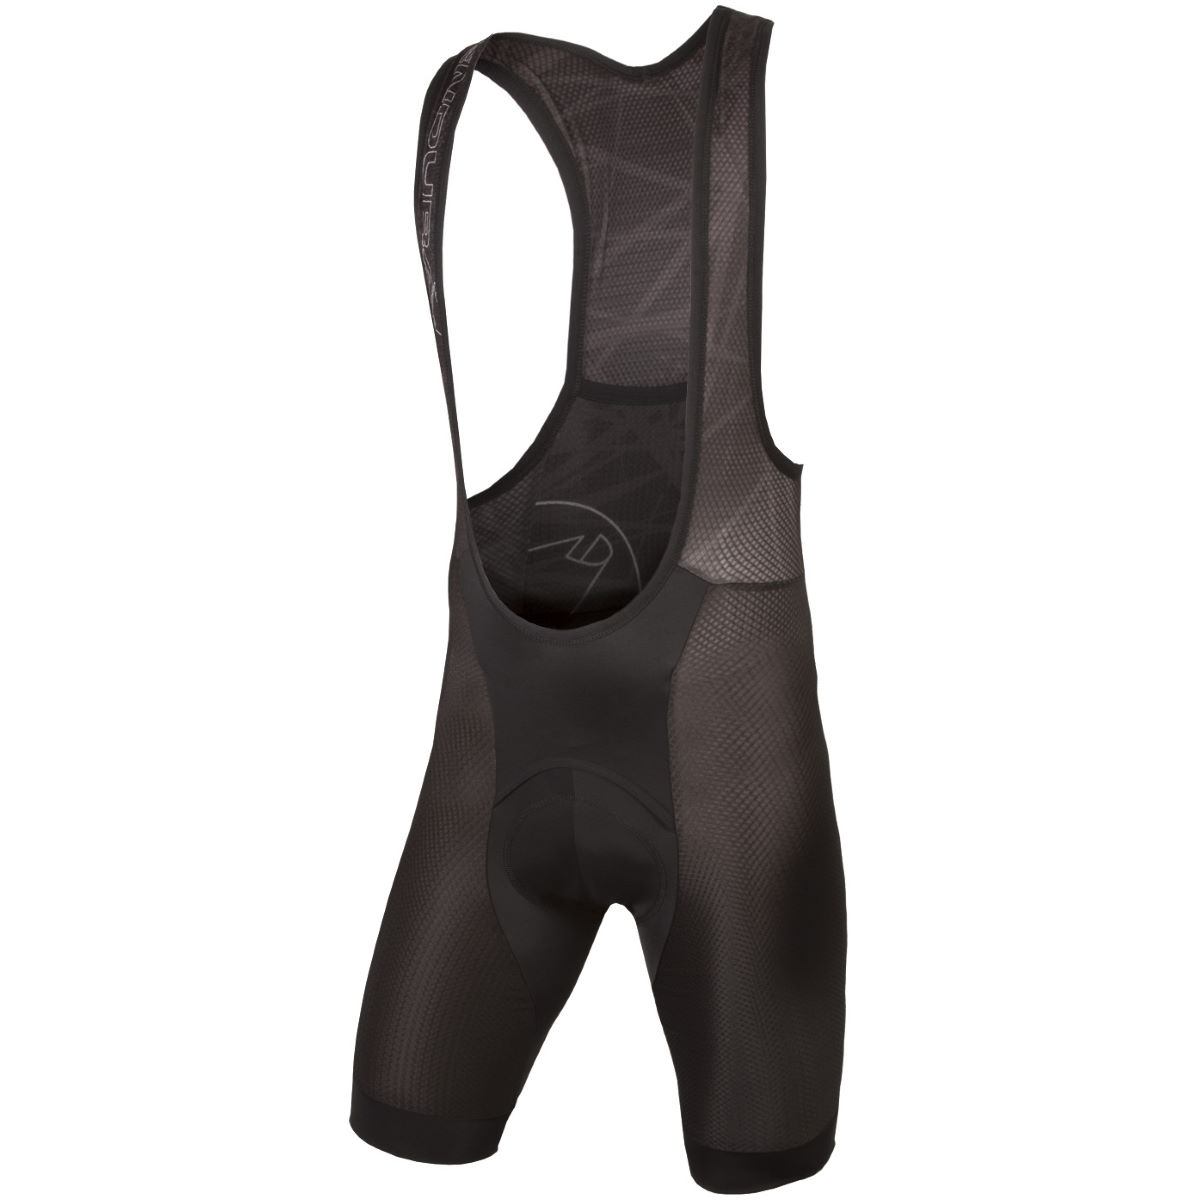 Endura SingleTrack Bib Liner - S Black | Lycra Cycling Shorts